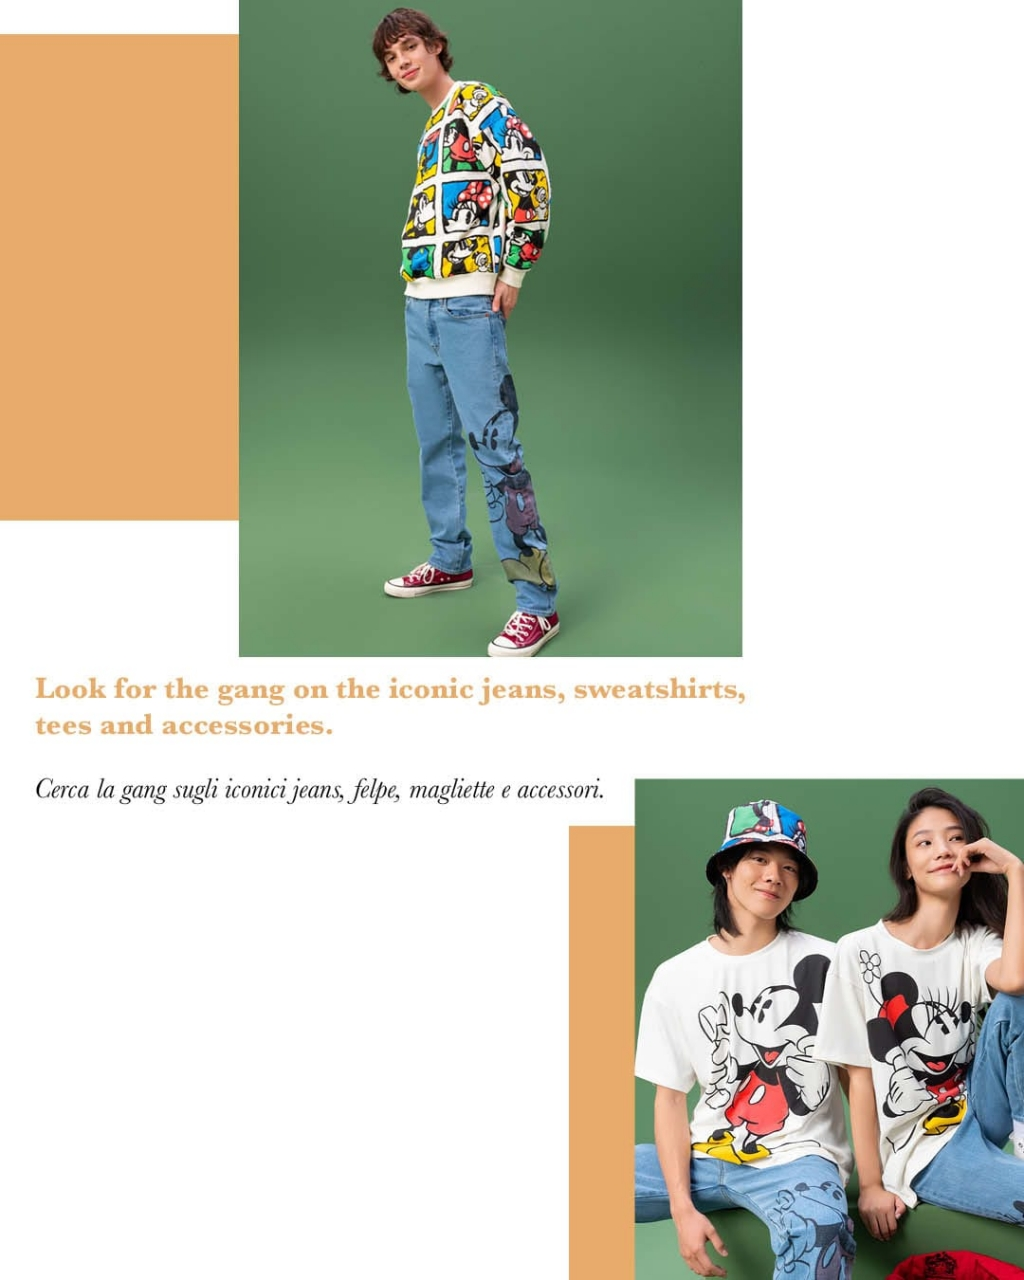 8/12. The official launch of Levi's x Disney Mickey & Friends